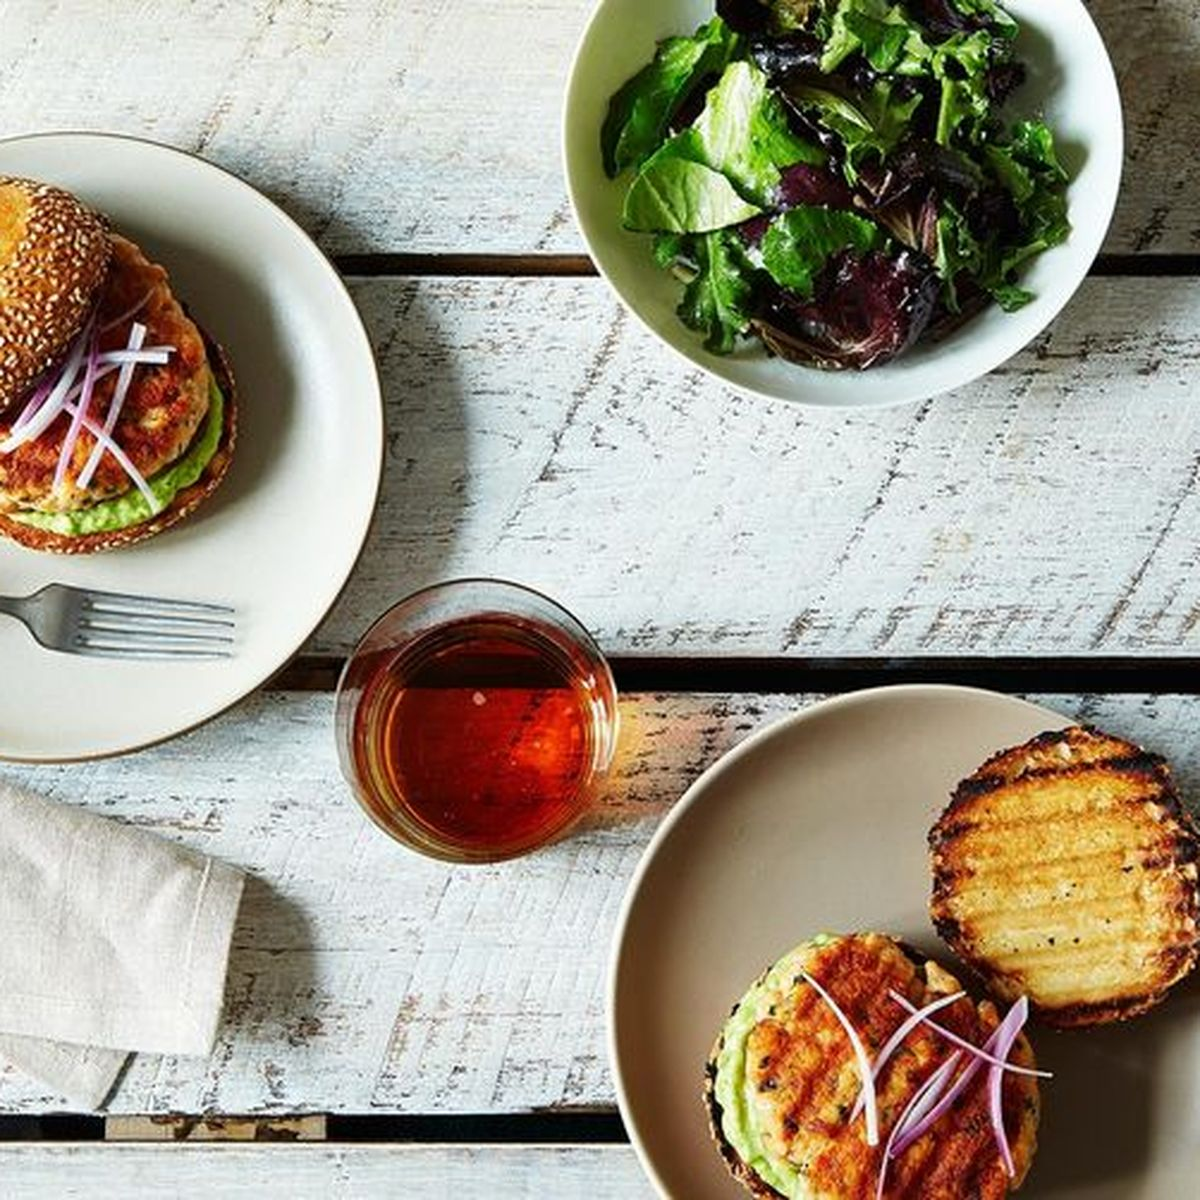 Have Herby Grilled Salmon Burgers For Dinner